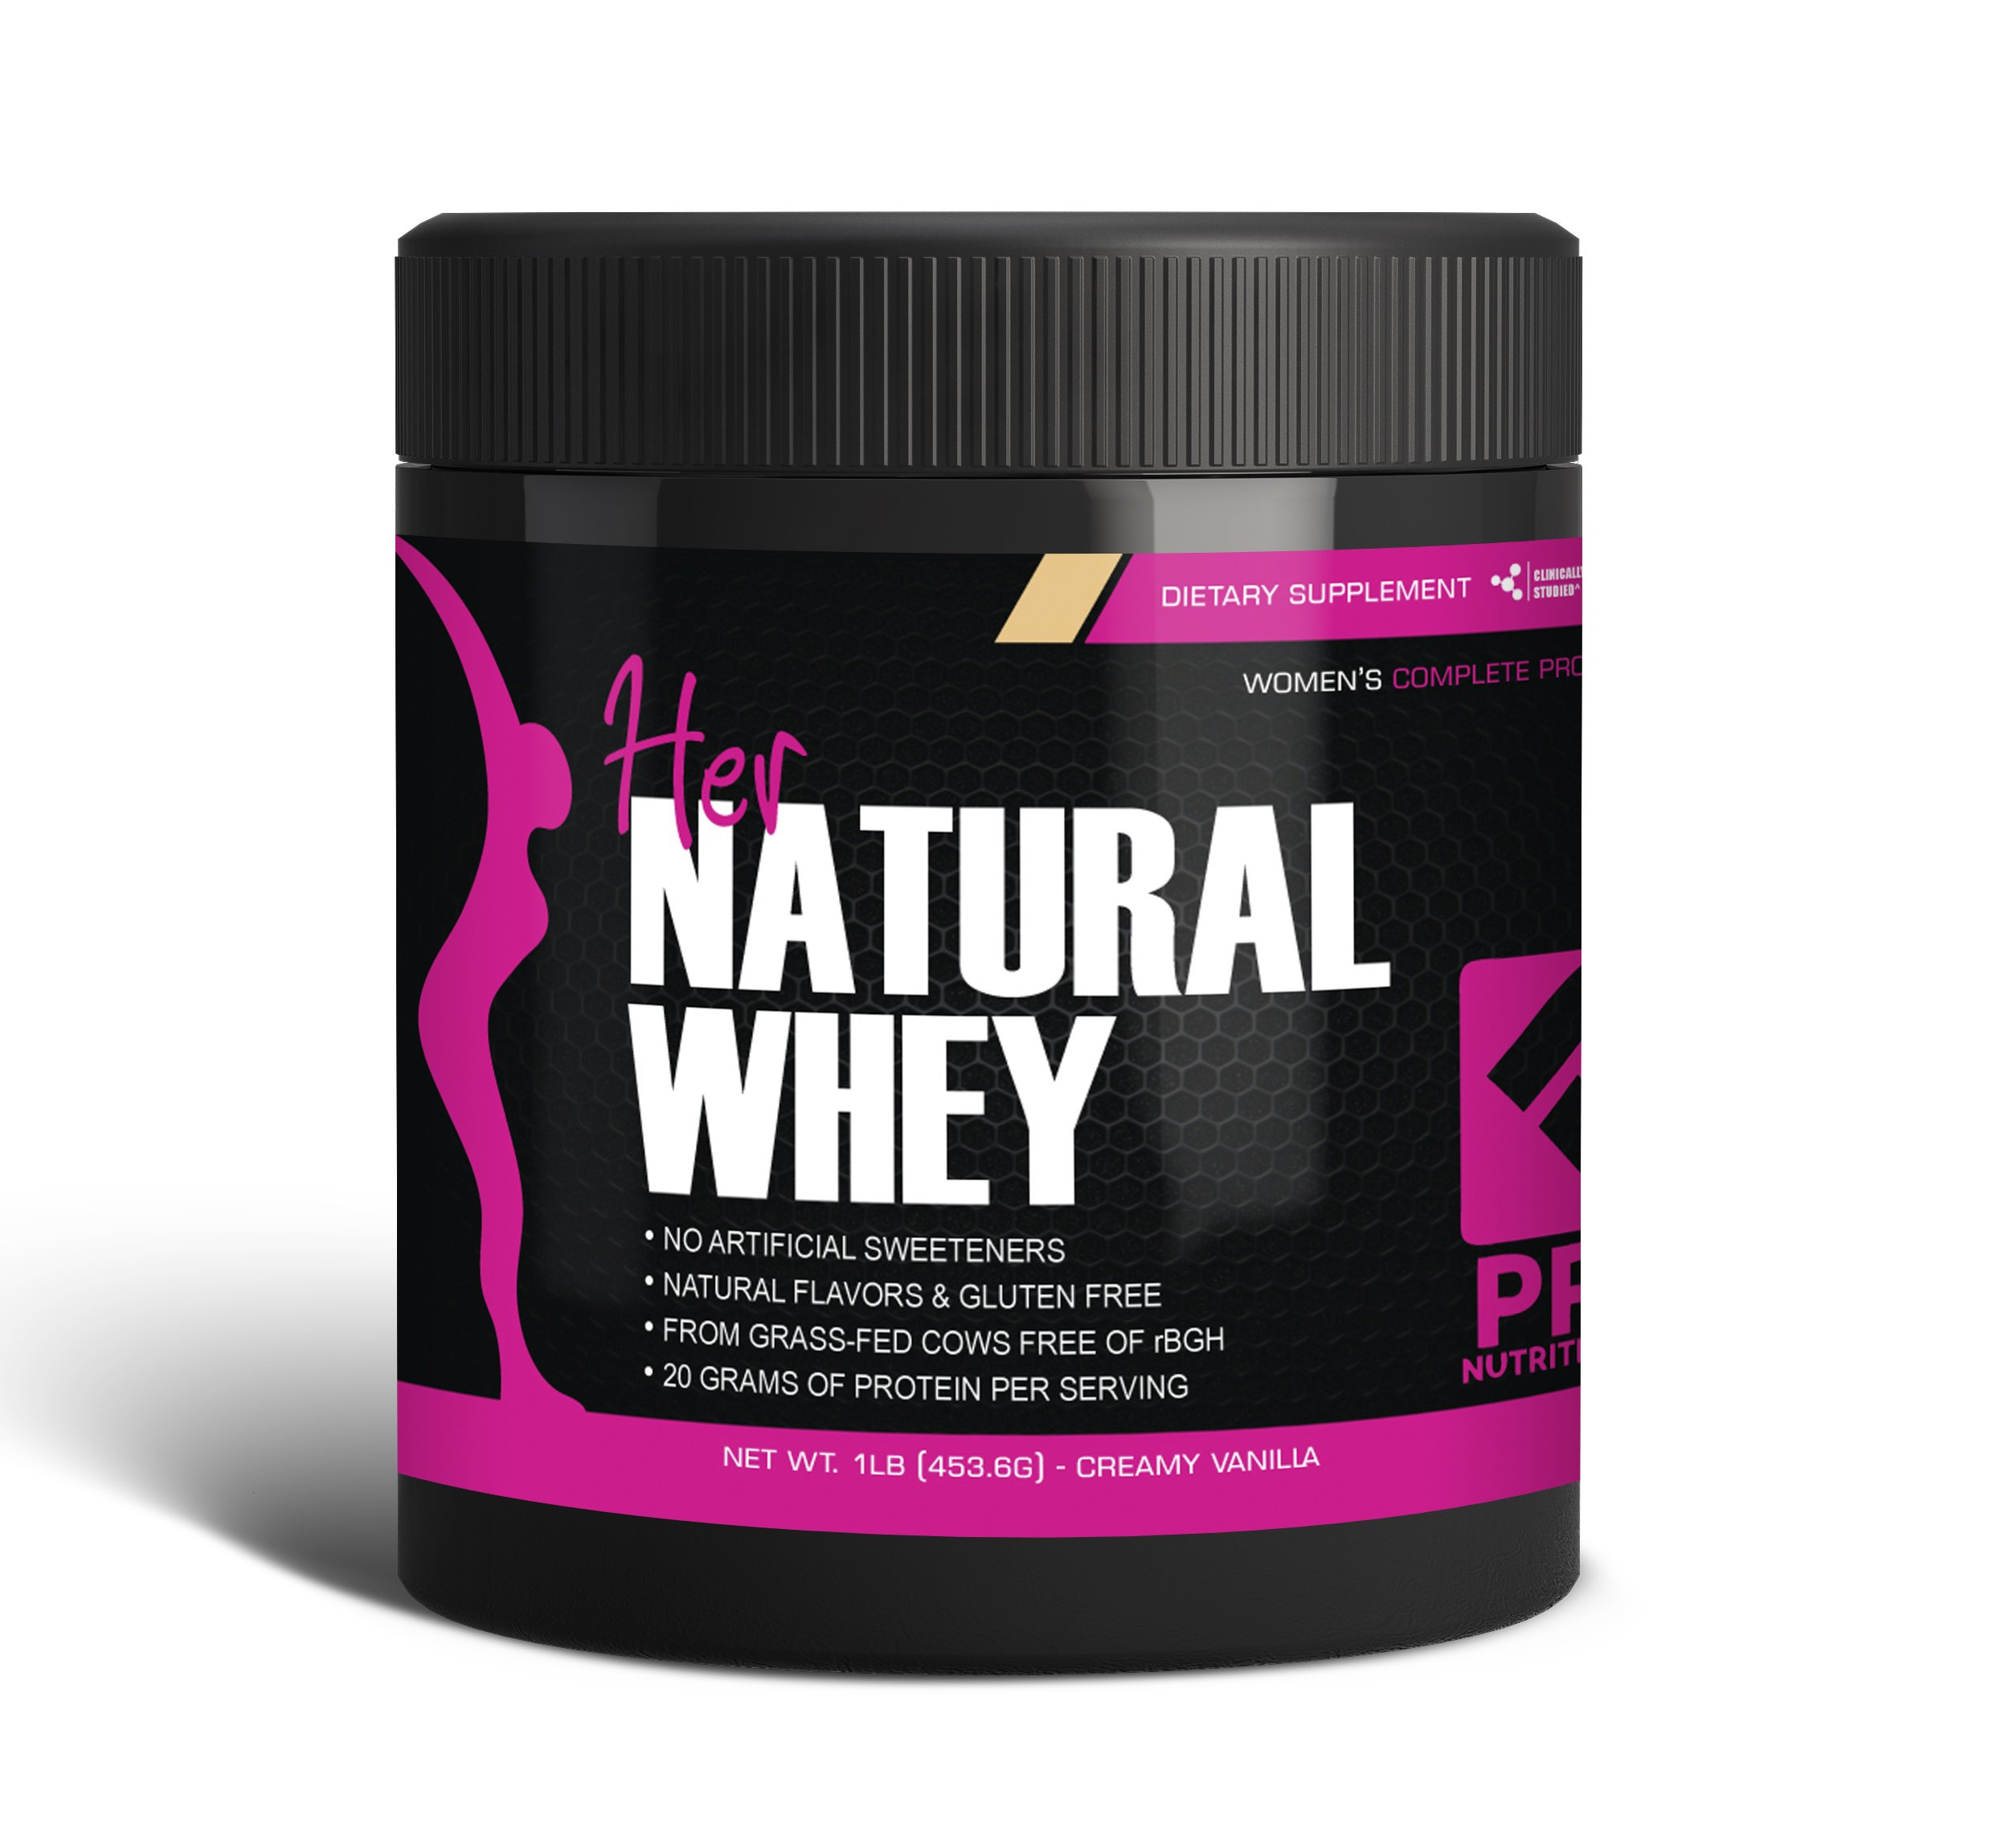 star nutrition hers